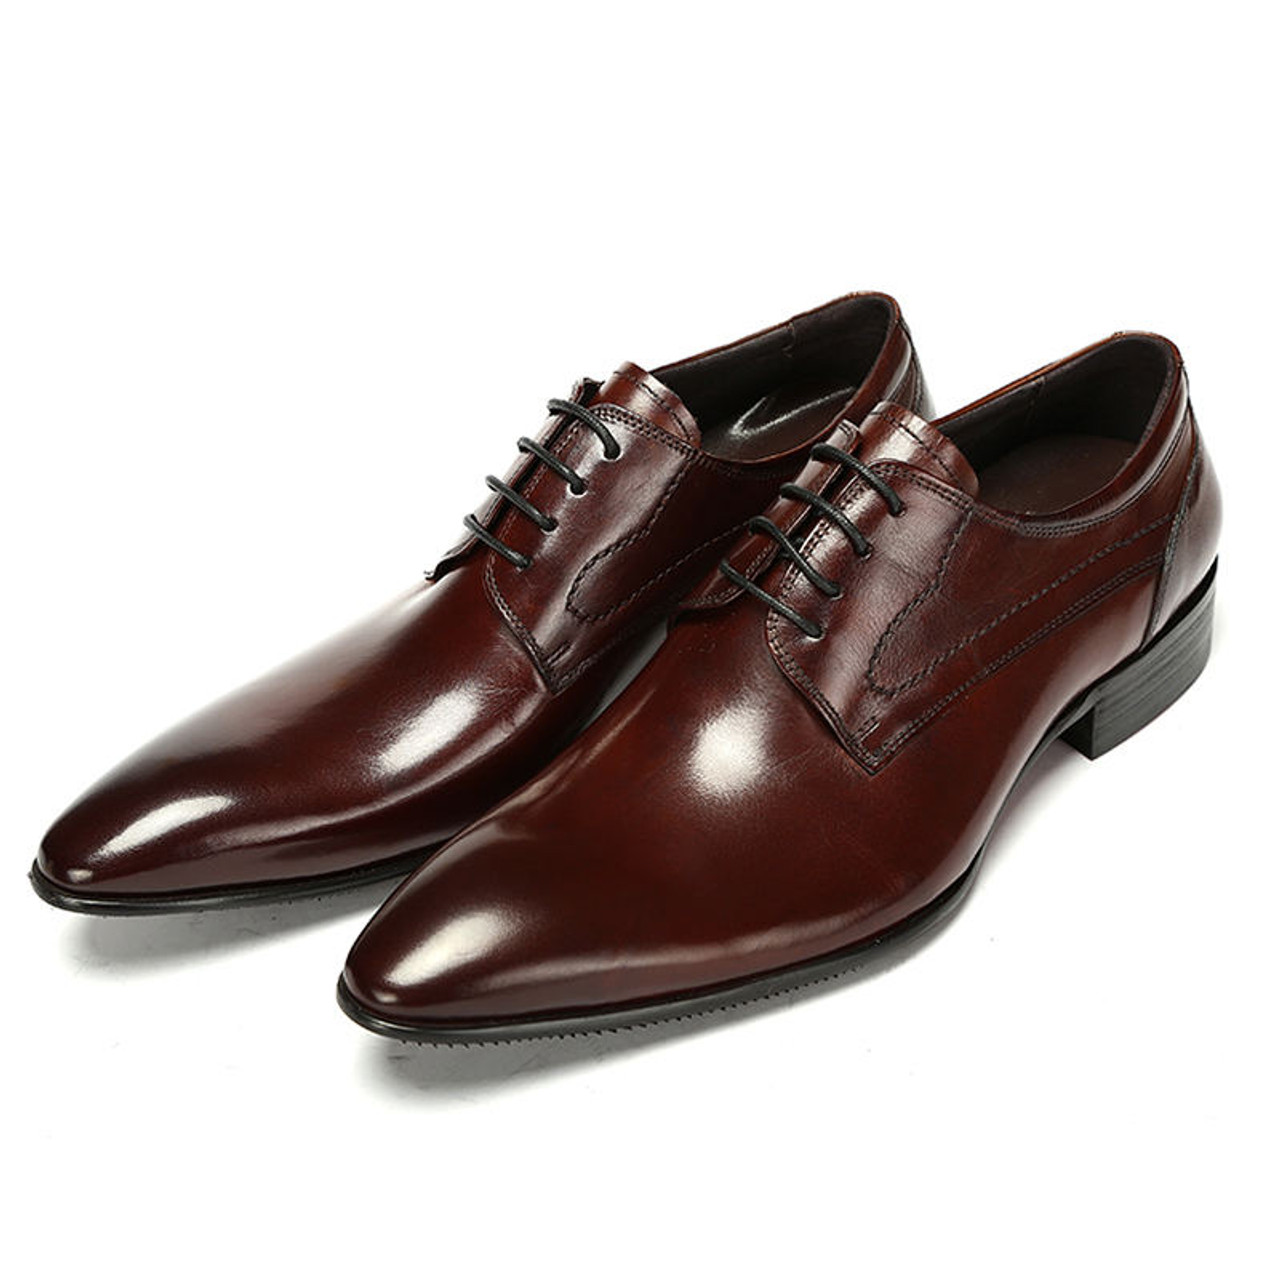 Mens Pointed Toe Dress Shoes For Sale High Quality Mens Dress